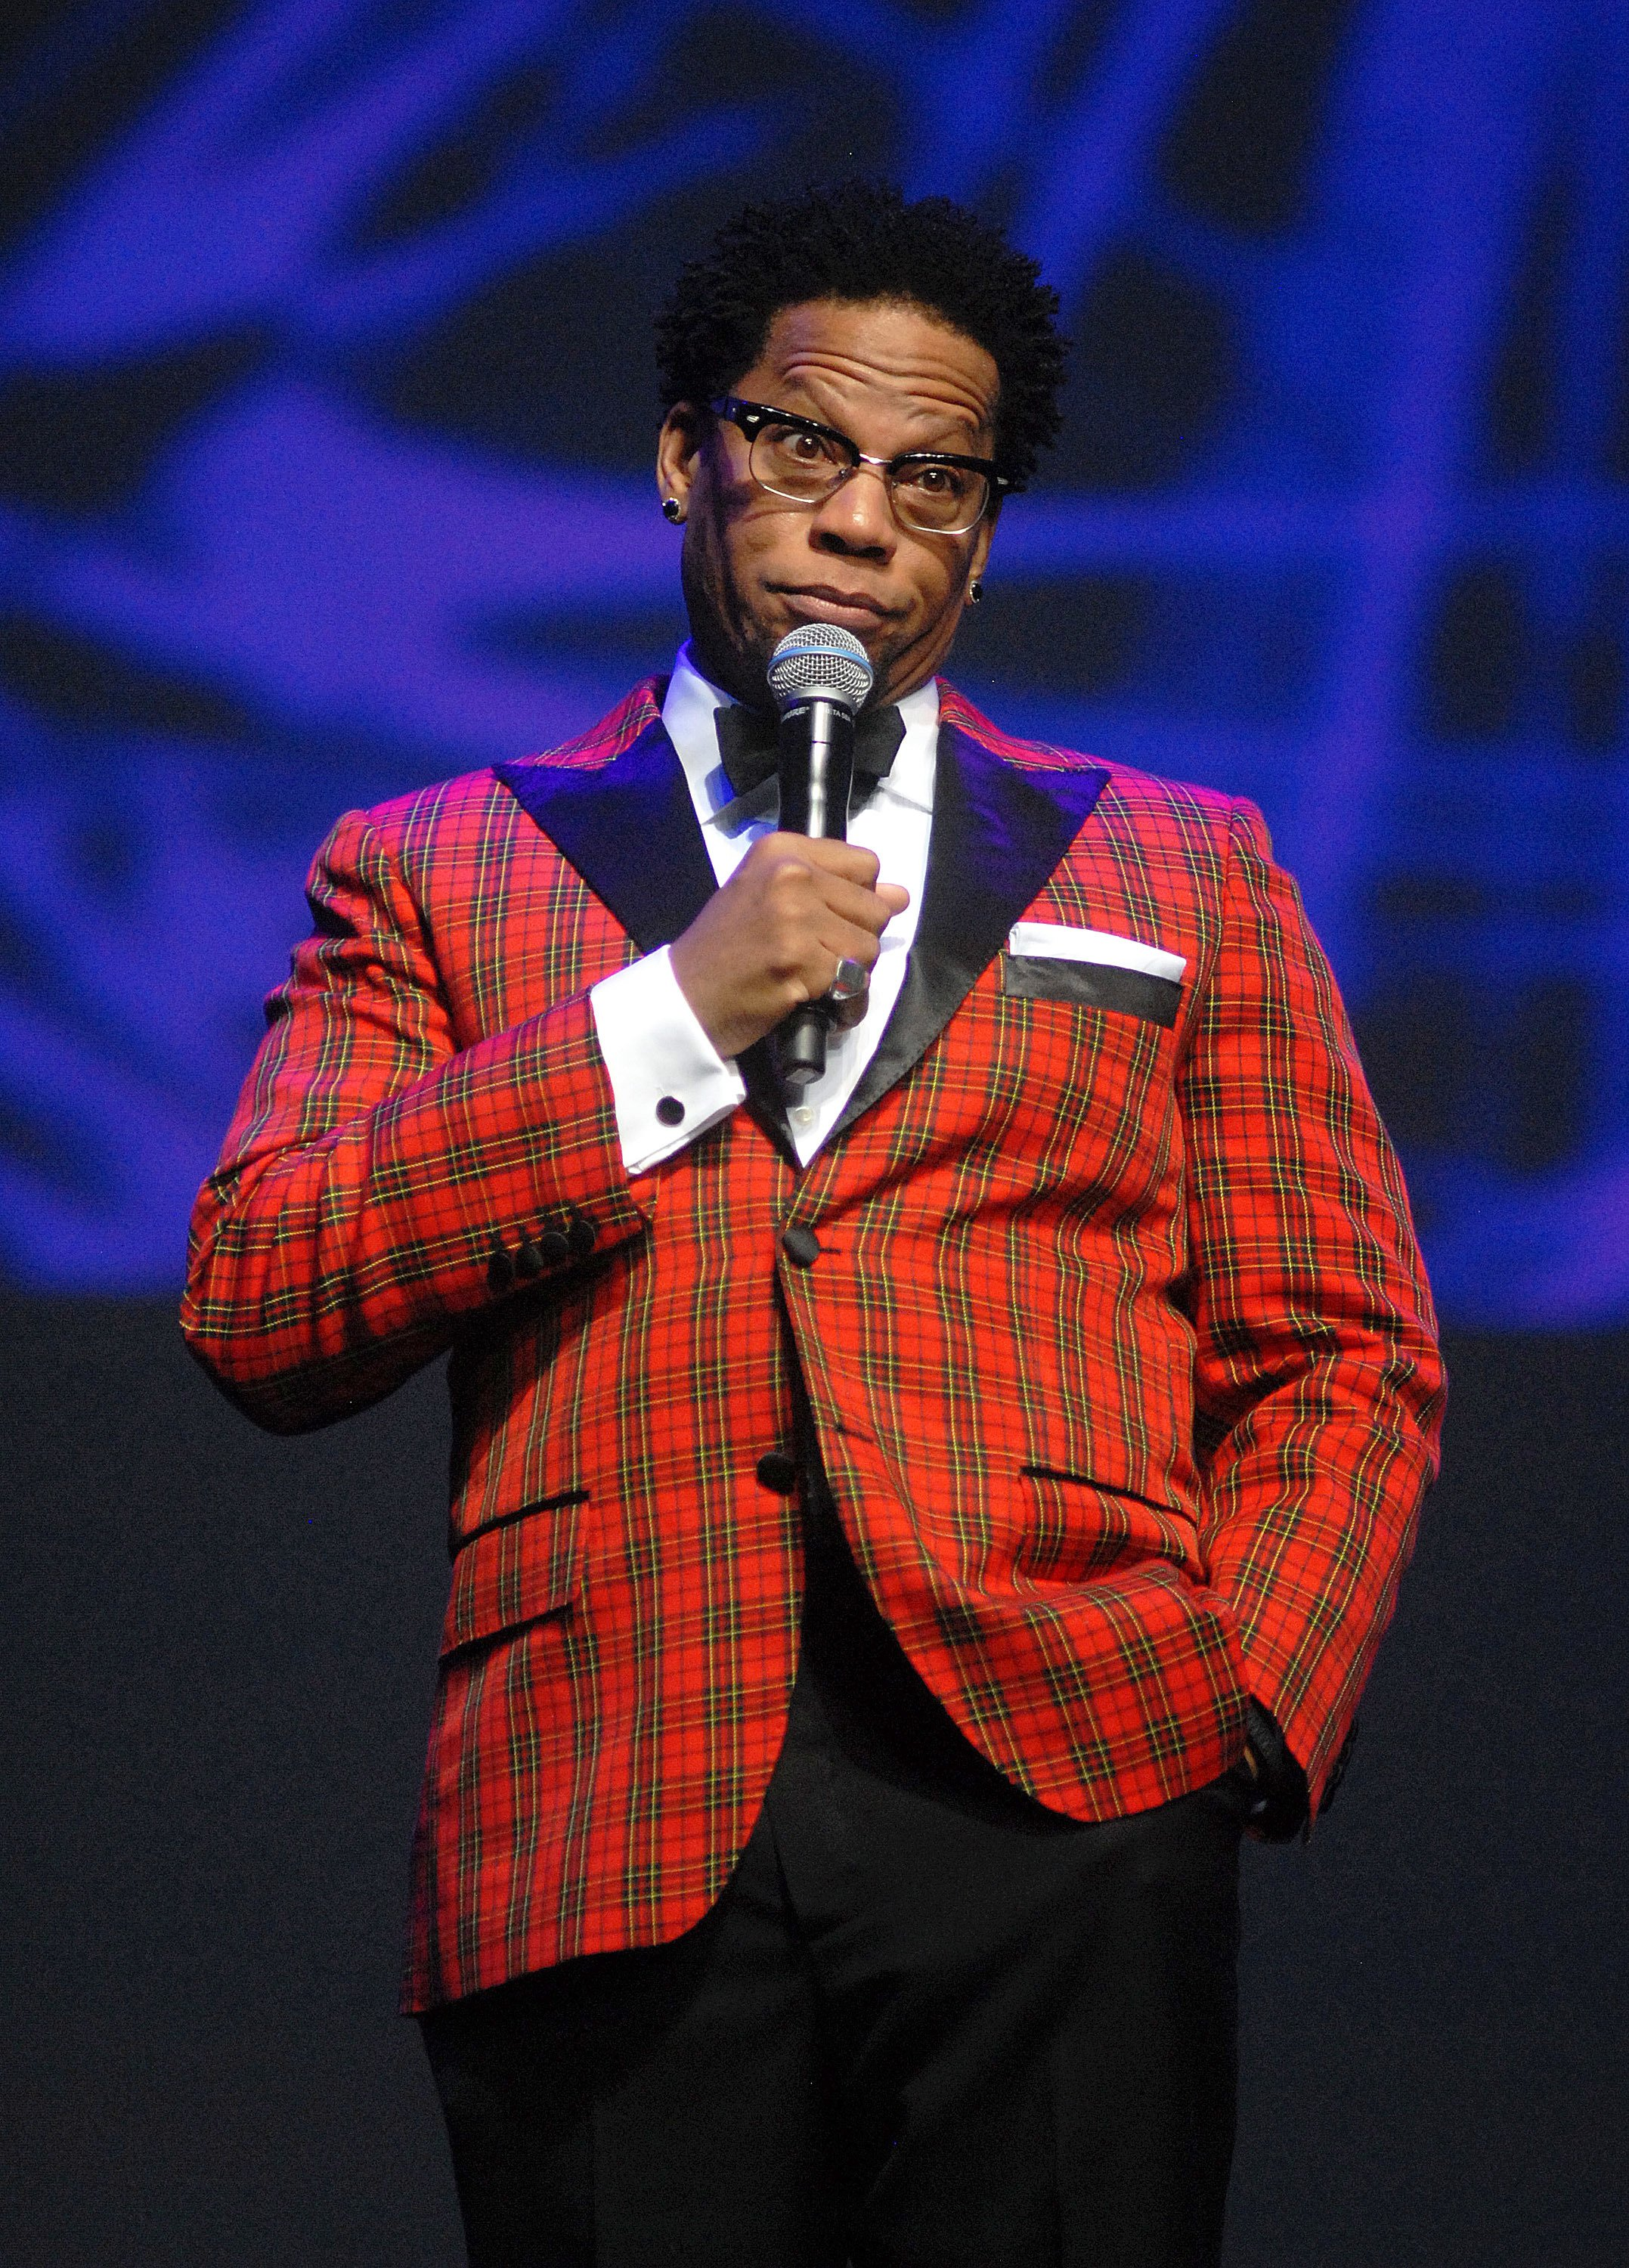 D.L. Hughley performs at MotorCity Casino's Sound Board Theater in 2014 in Detroit | Source: Getty Images